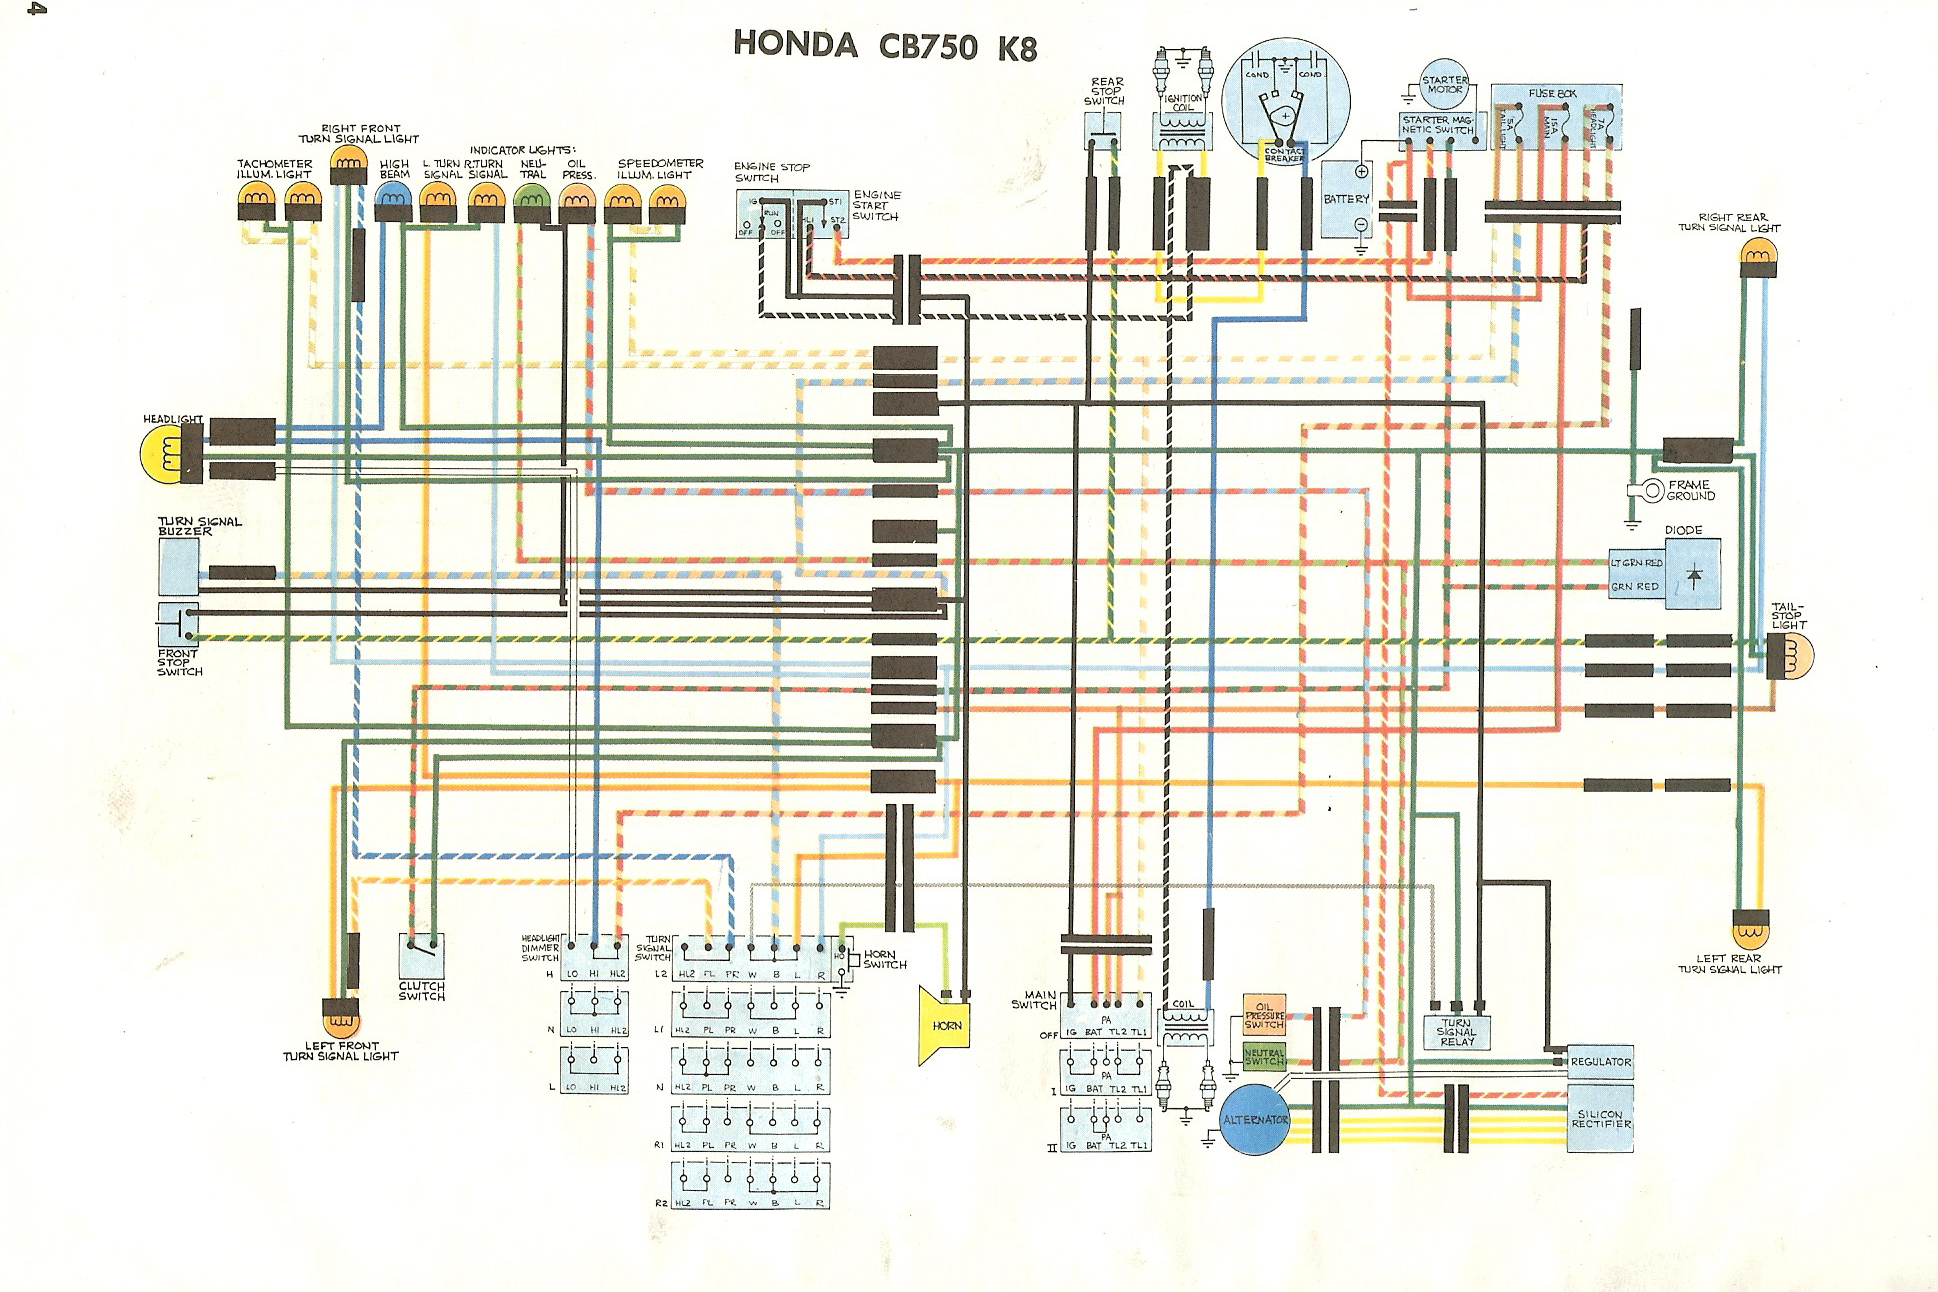 hight resolution of cb750k 1972 honda cb750 wiring diagram honda cb750 wiring diagram